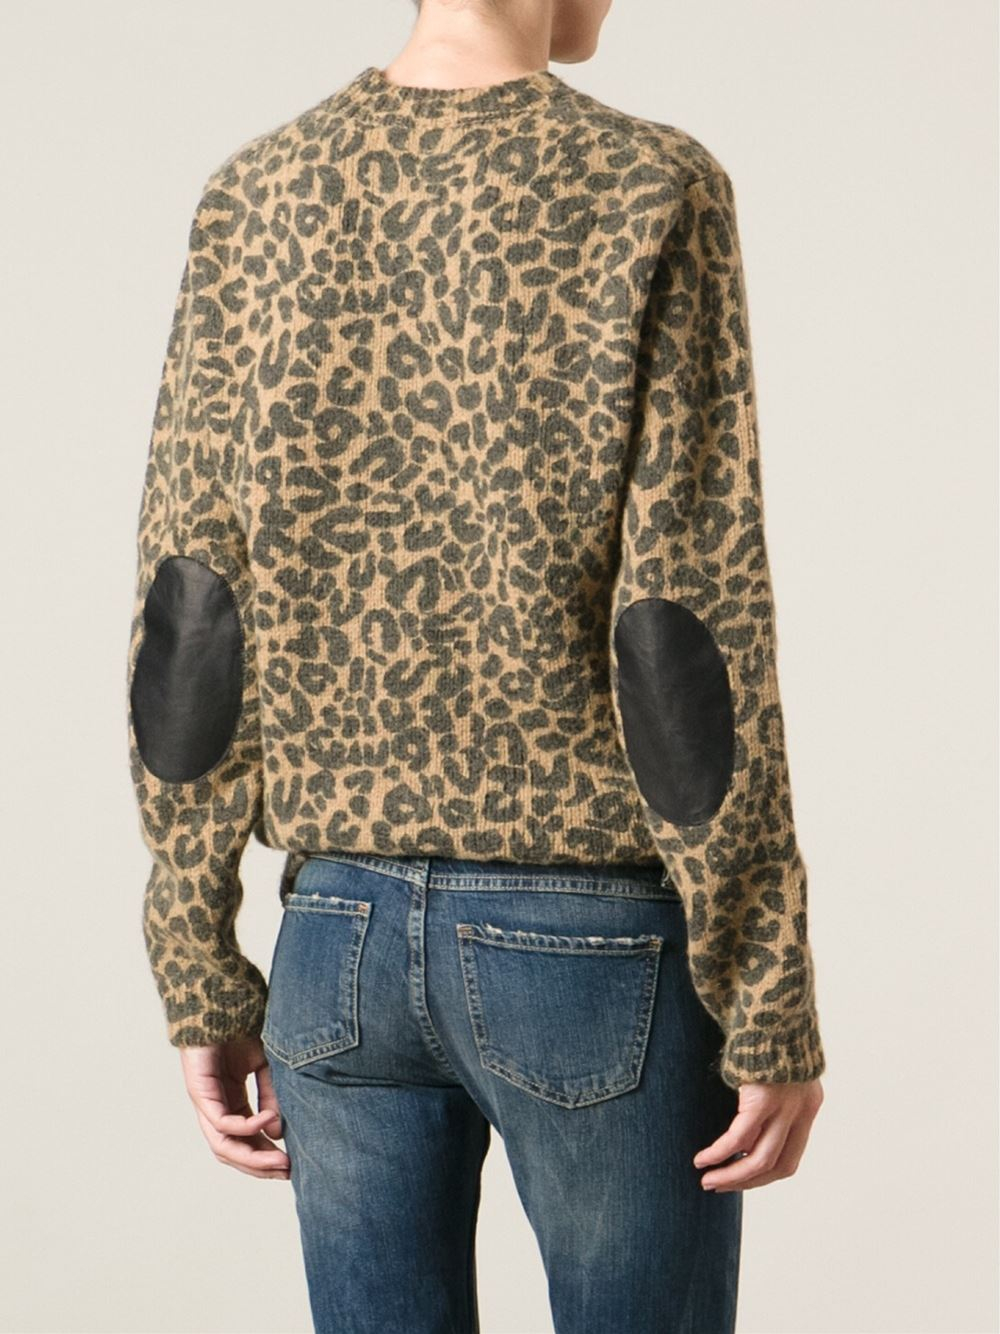 7c66f65e8a20 Each x Other Leopard Print Sweater in Brown - Lyst